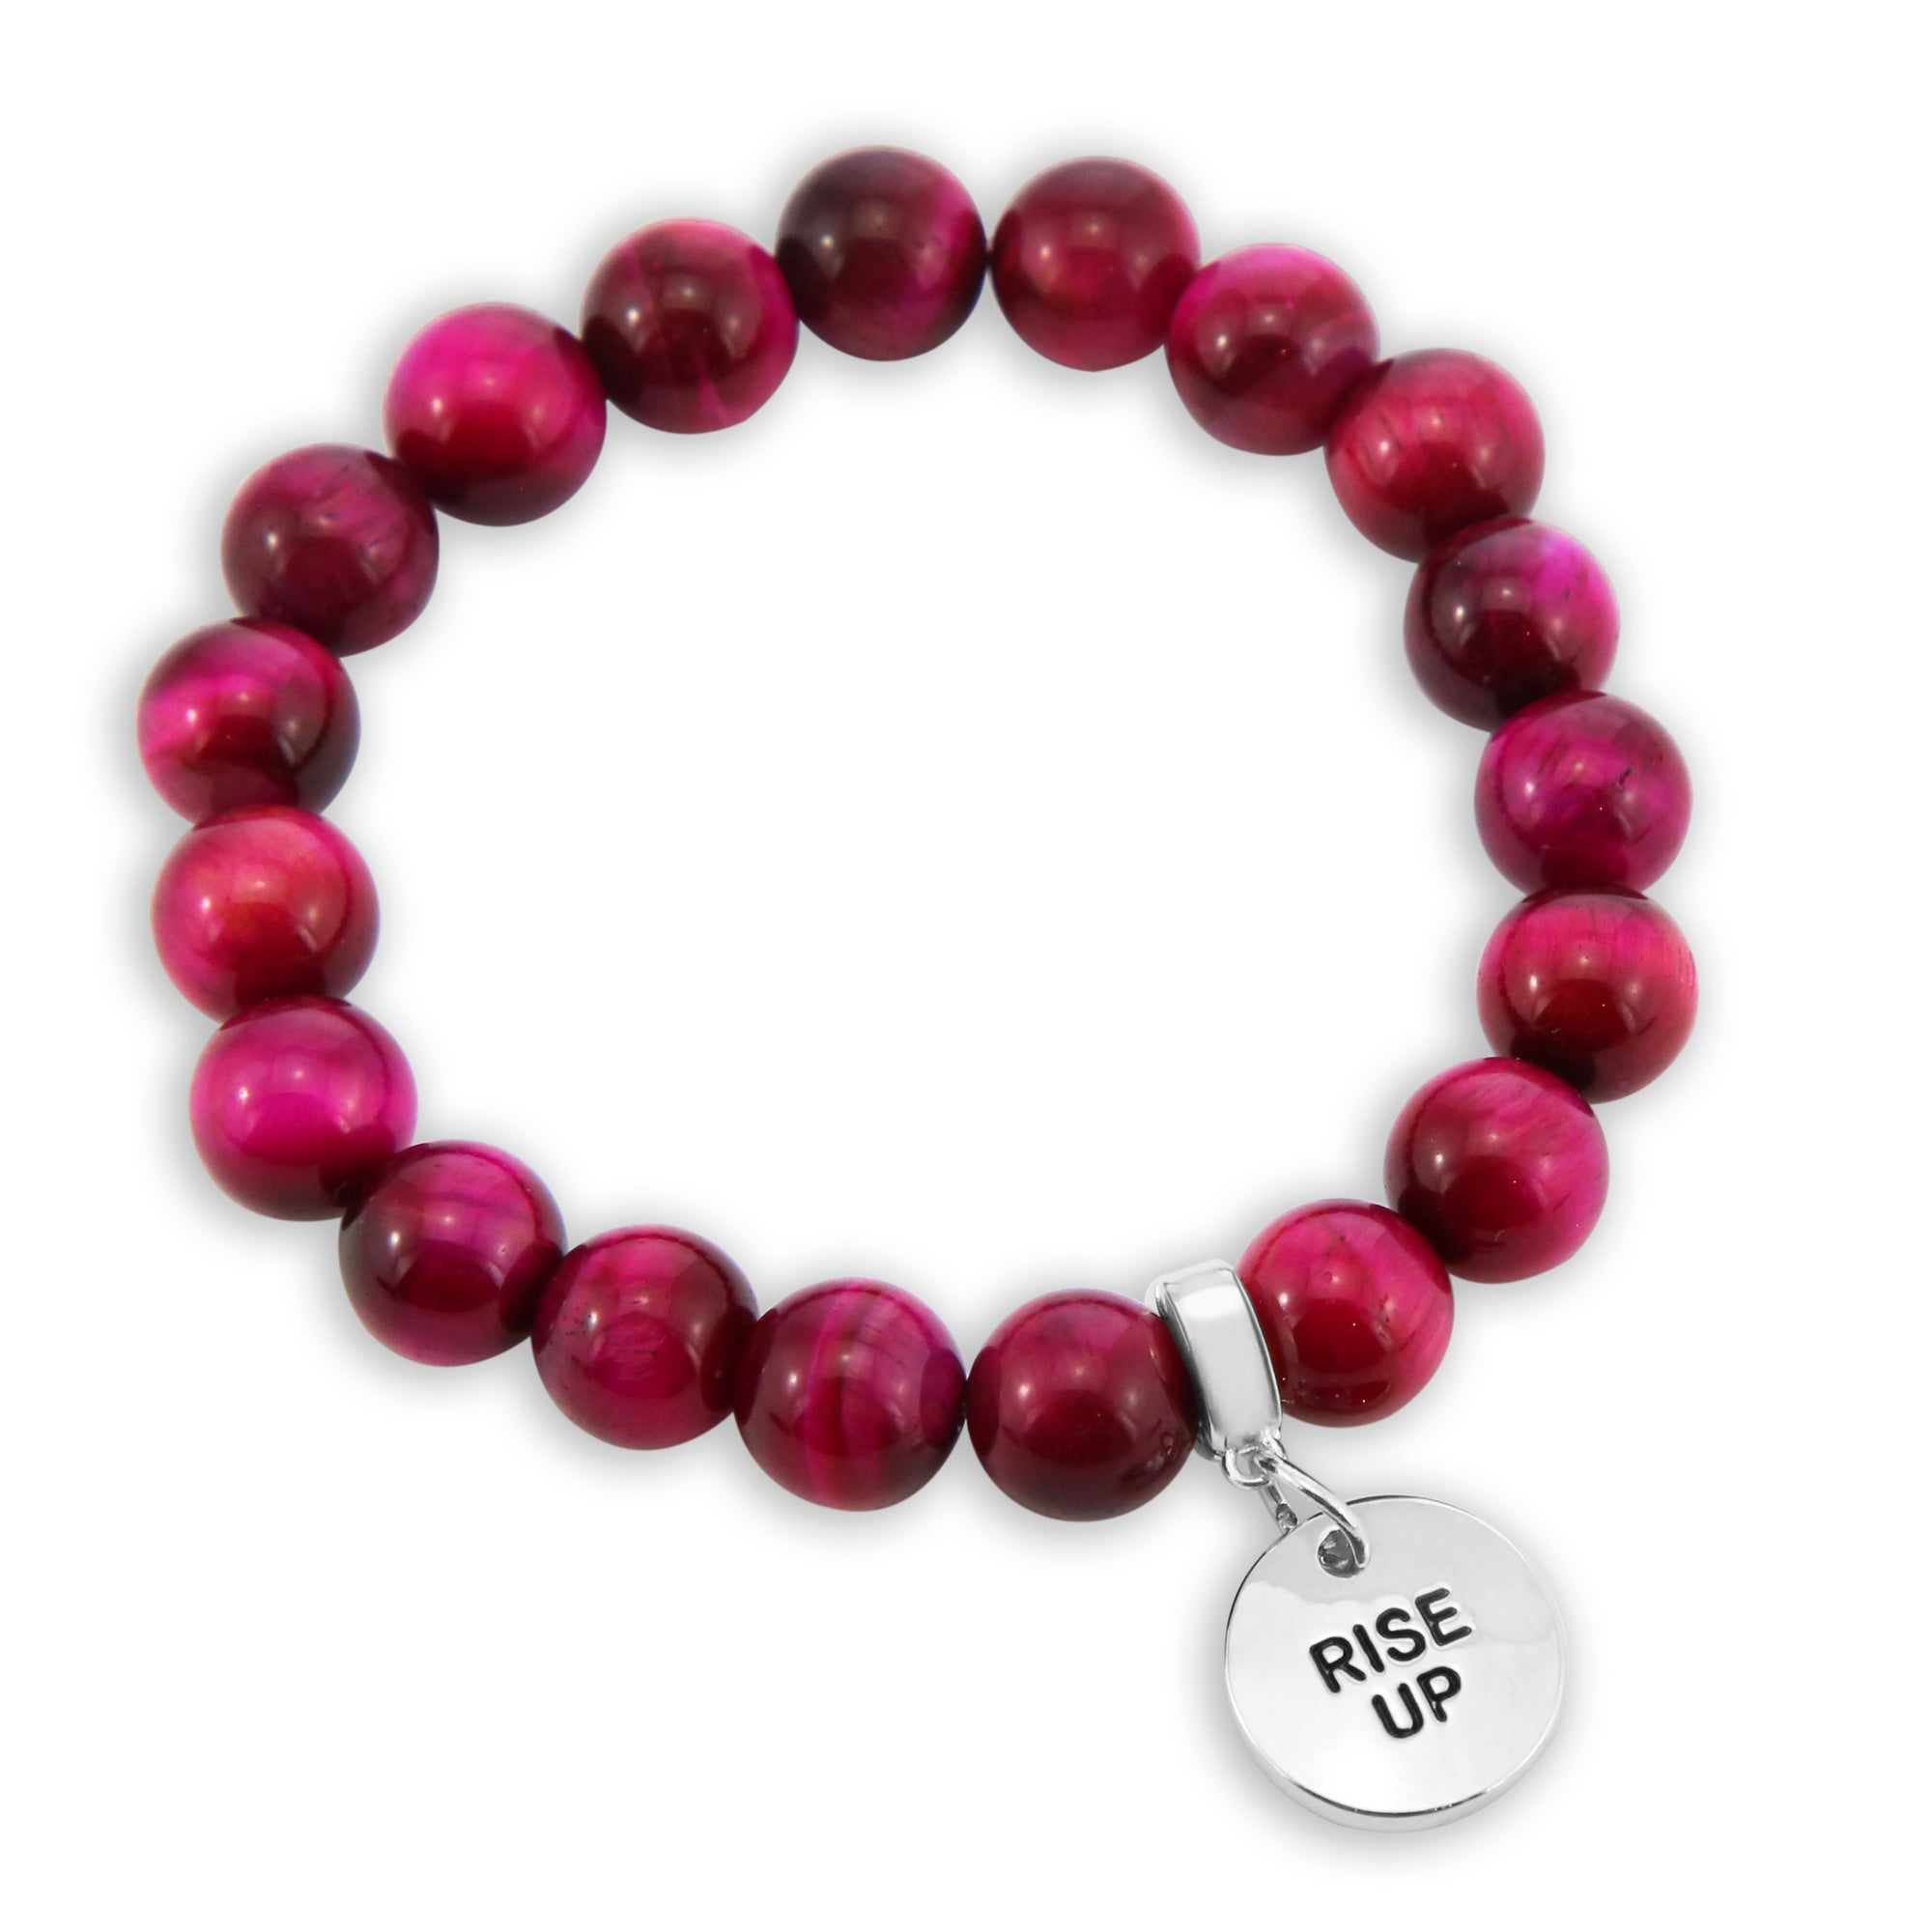 LIMITED EDITION Precious Stones - Bright Fuchsia Tigers Eye 10mm bead bracelet - with Word Charms (5017)